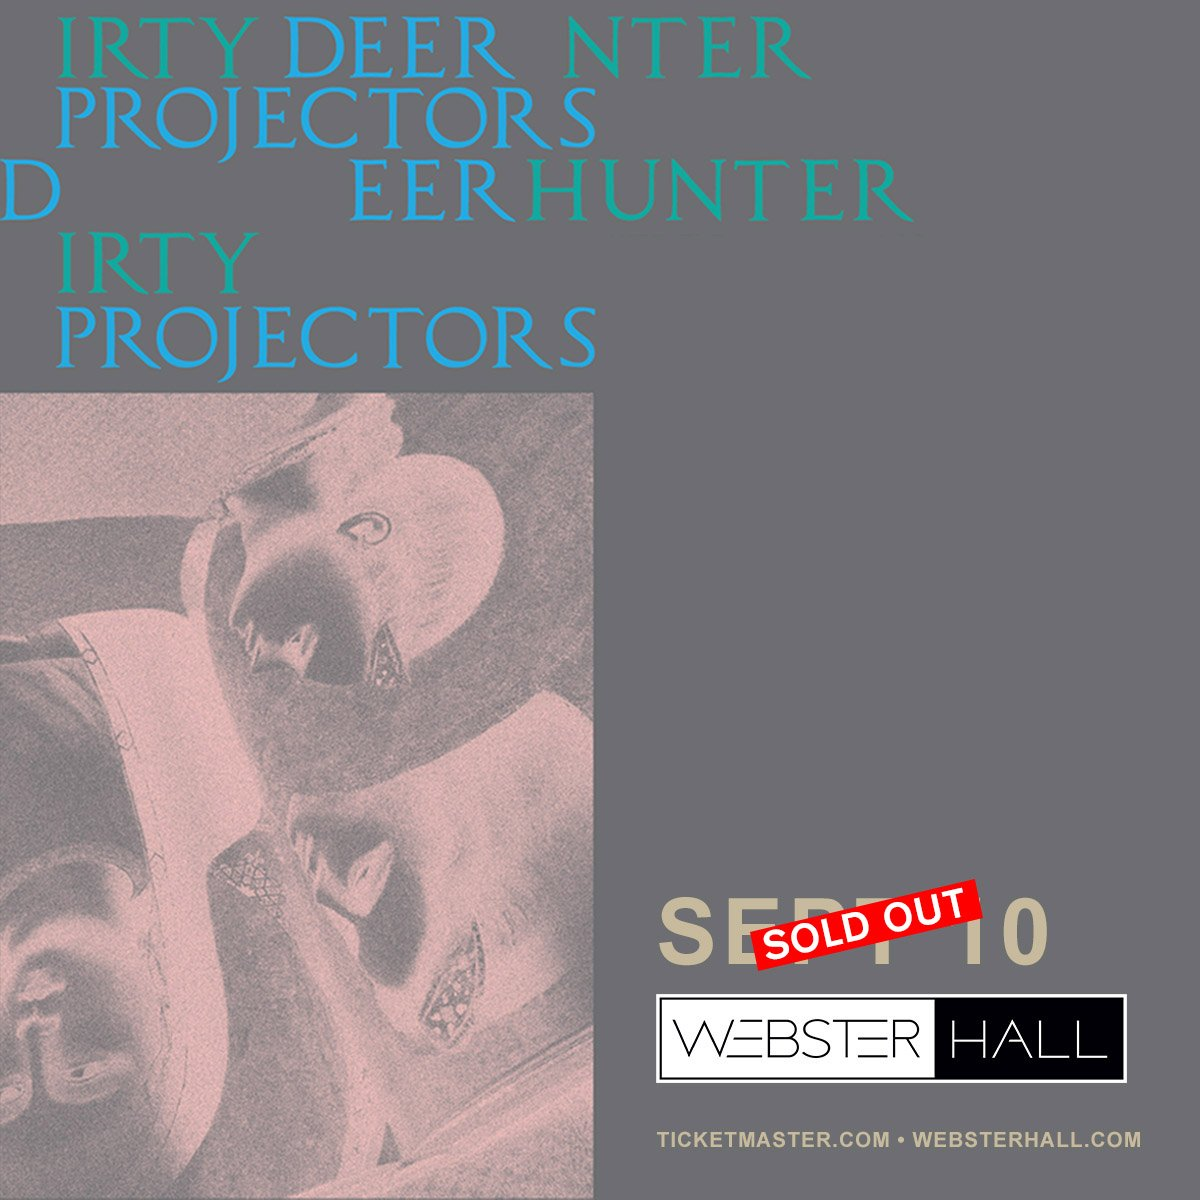 Sept 10 w/ @DirtyProjectors at @WebsterHall is sold out. <br>http://pic.twitter.com/qpu6ksN3Tv